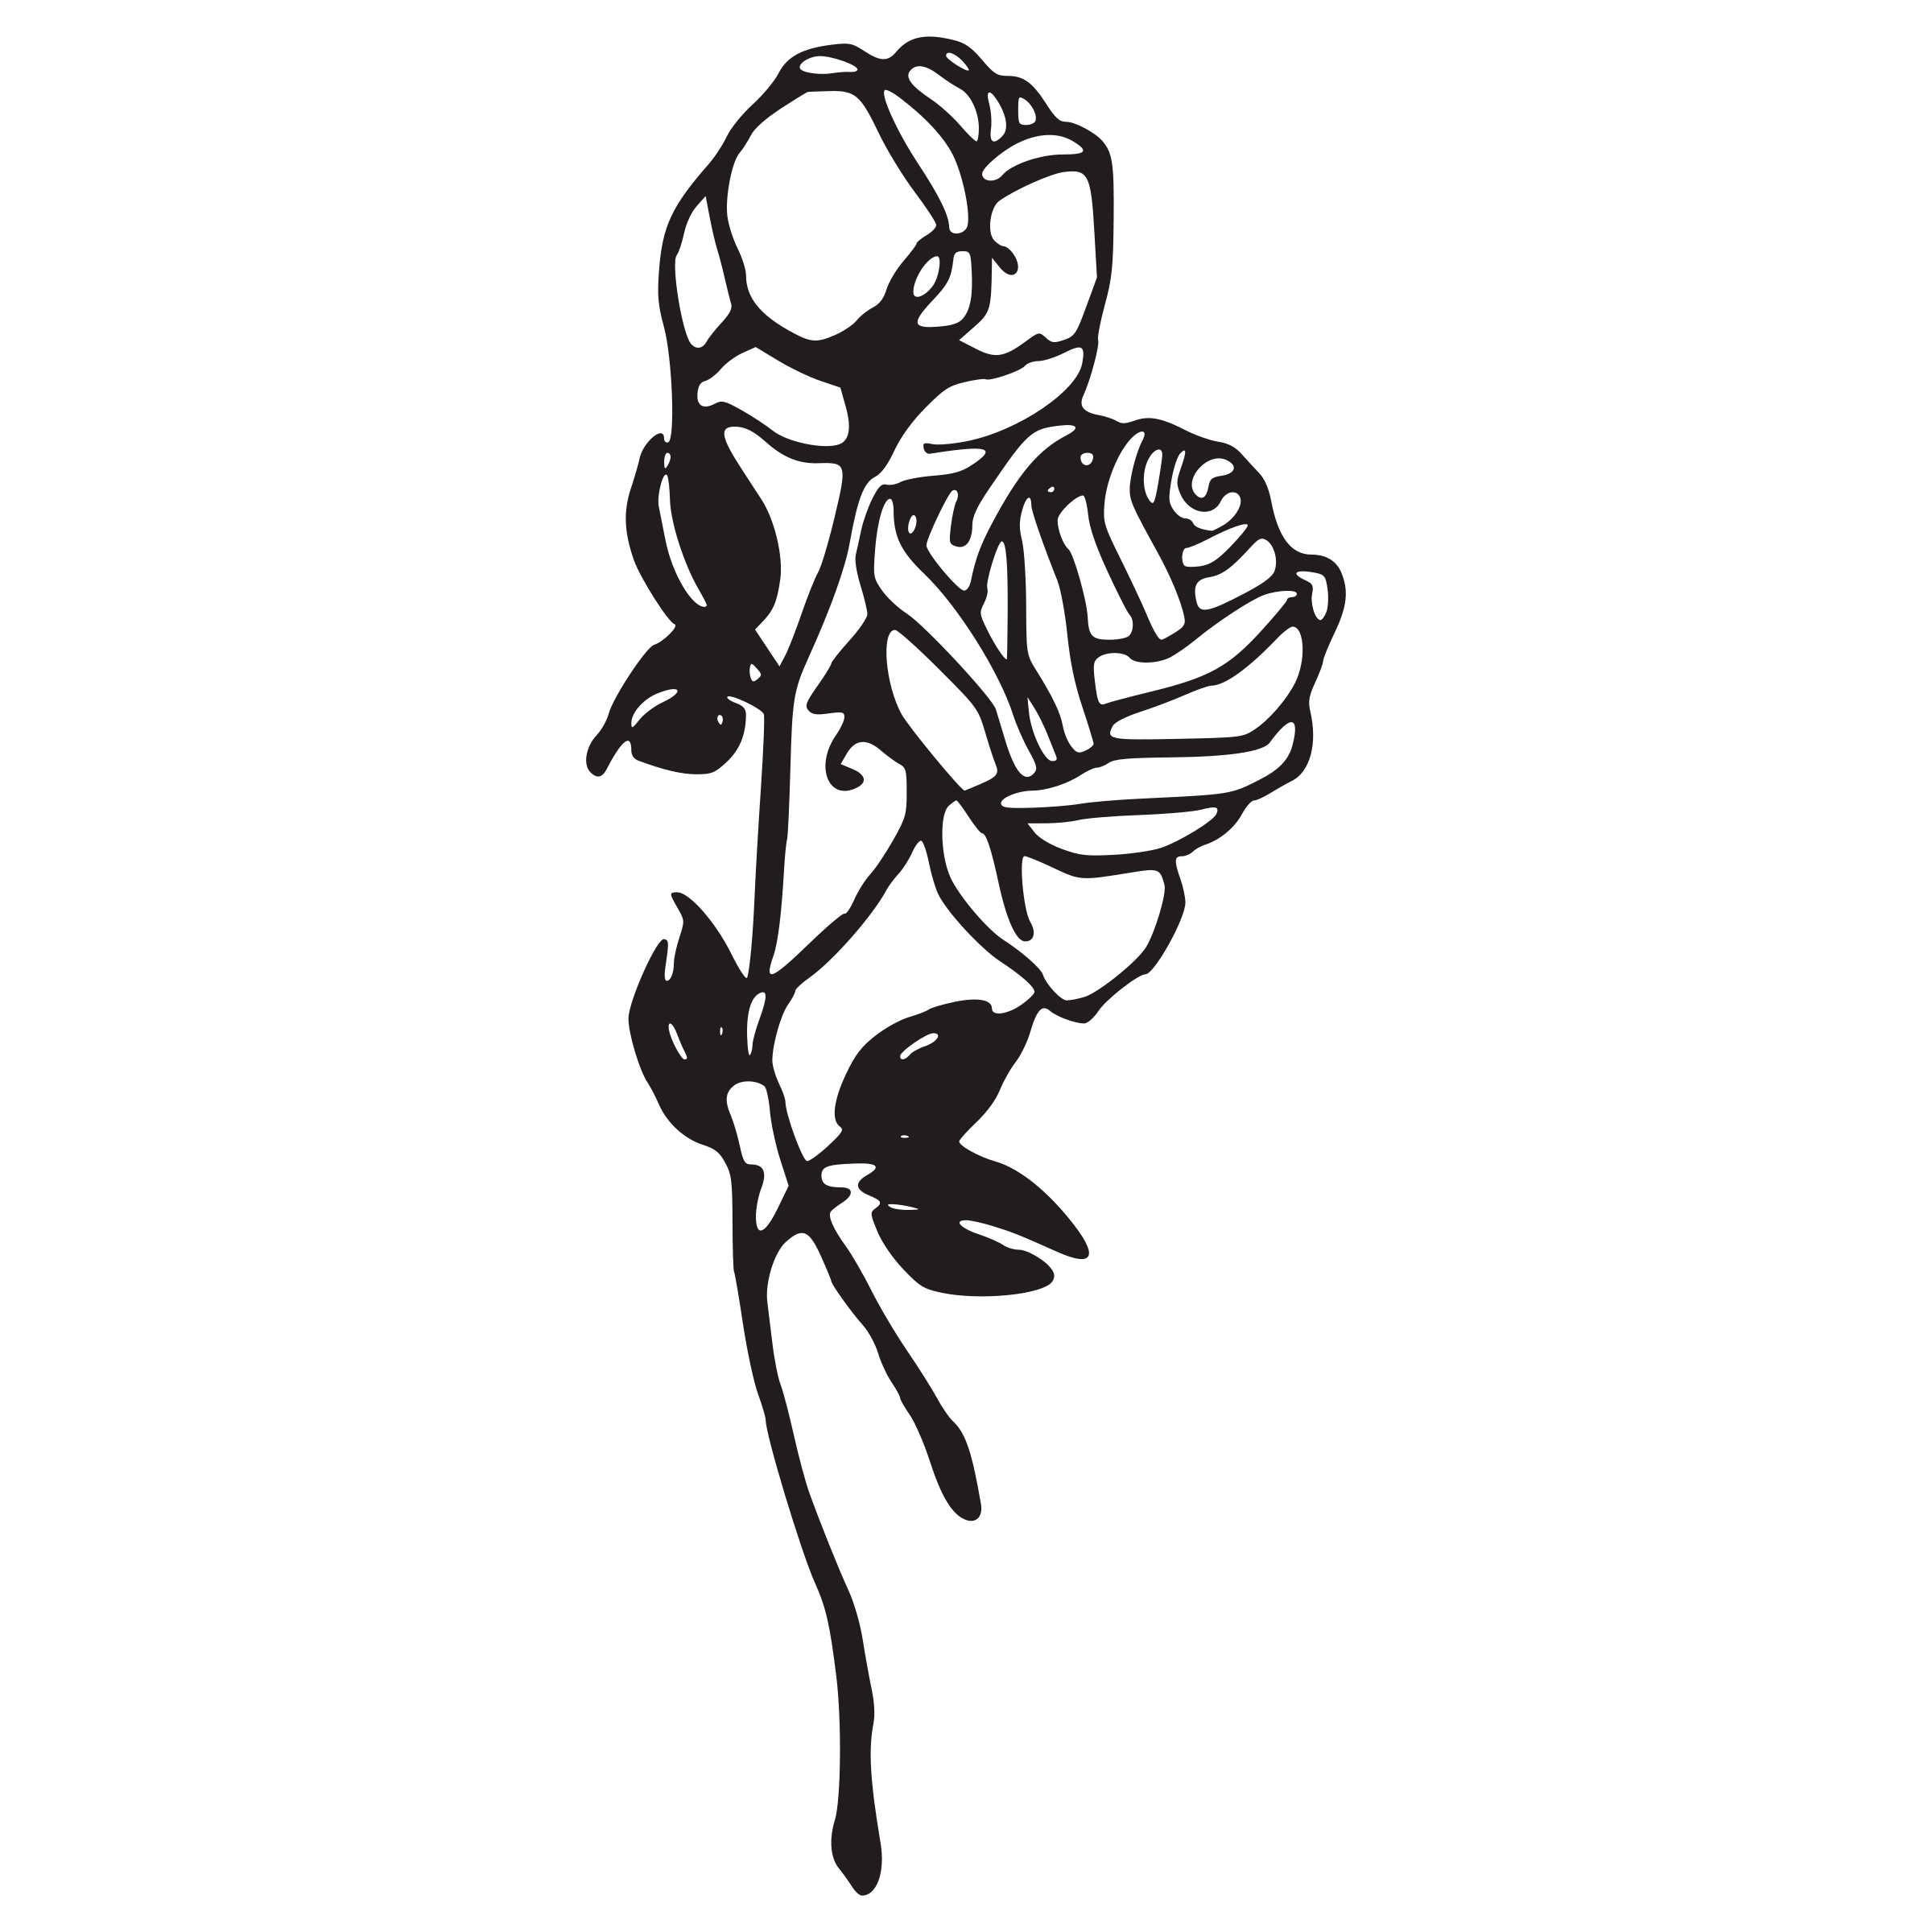 Rose Flower Png Black And White & Free Rose Flower Black ... - Beautiful Black and White Roses